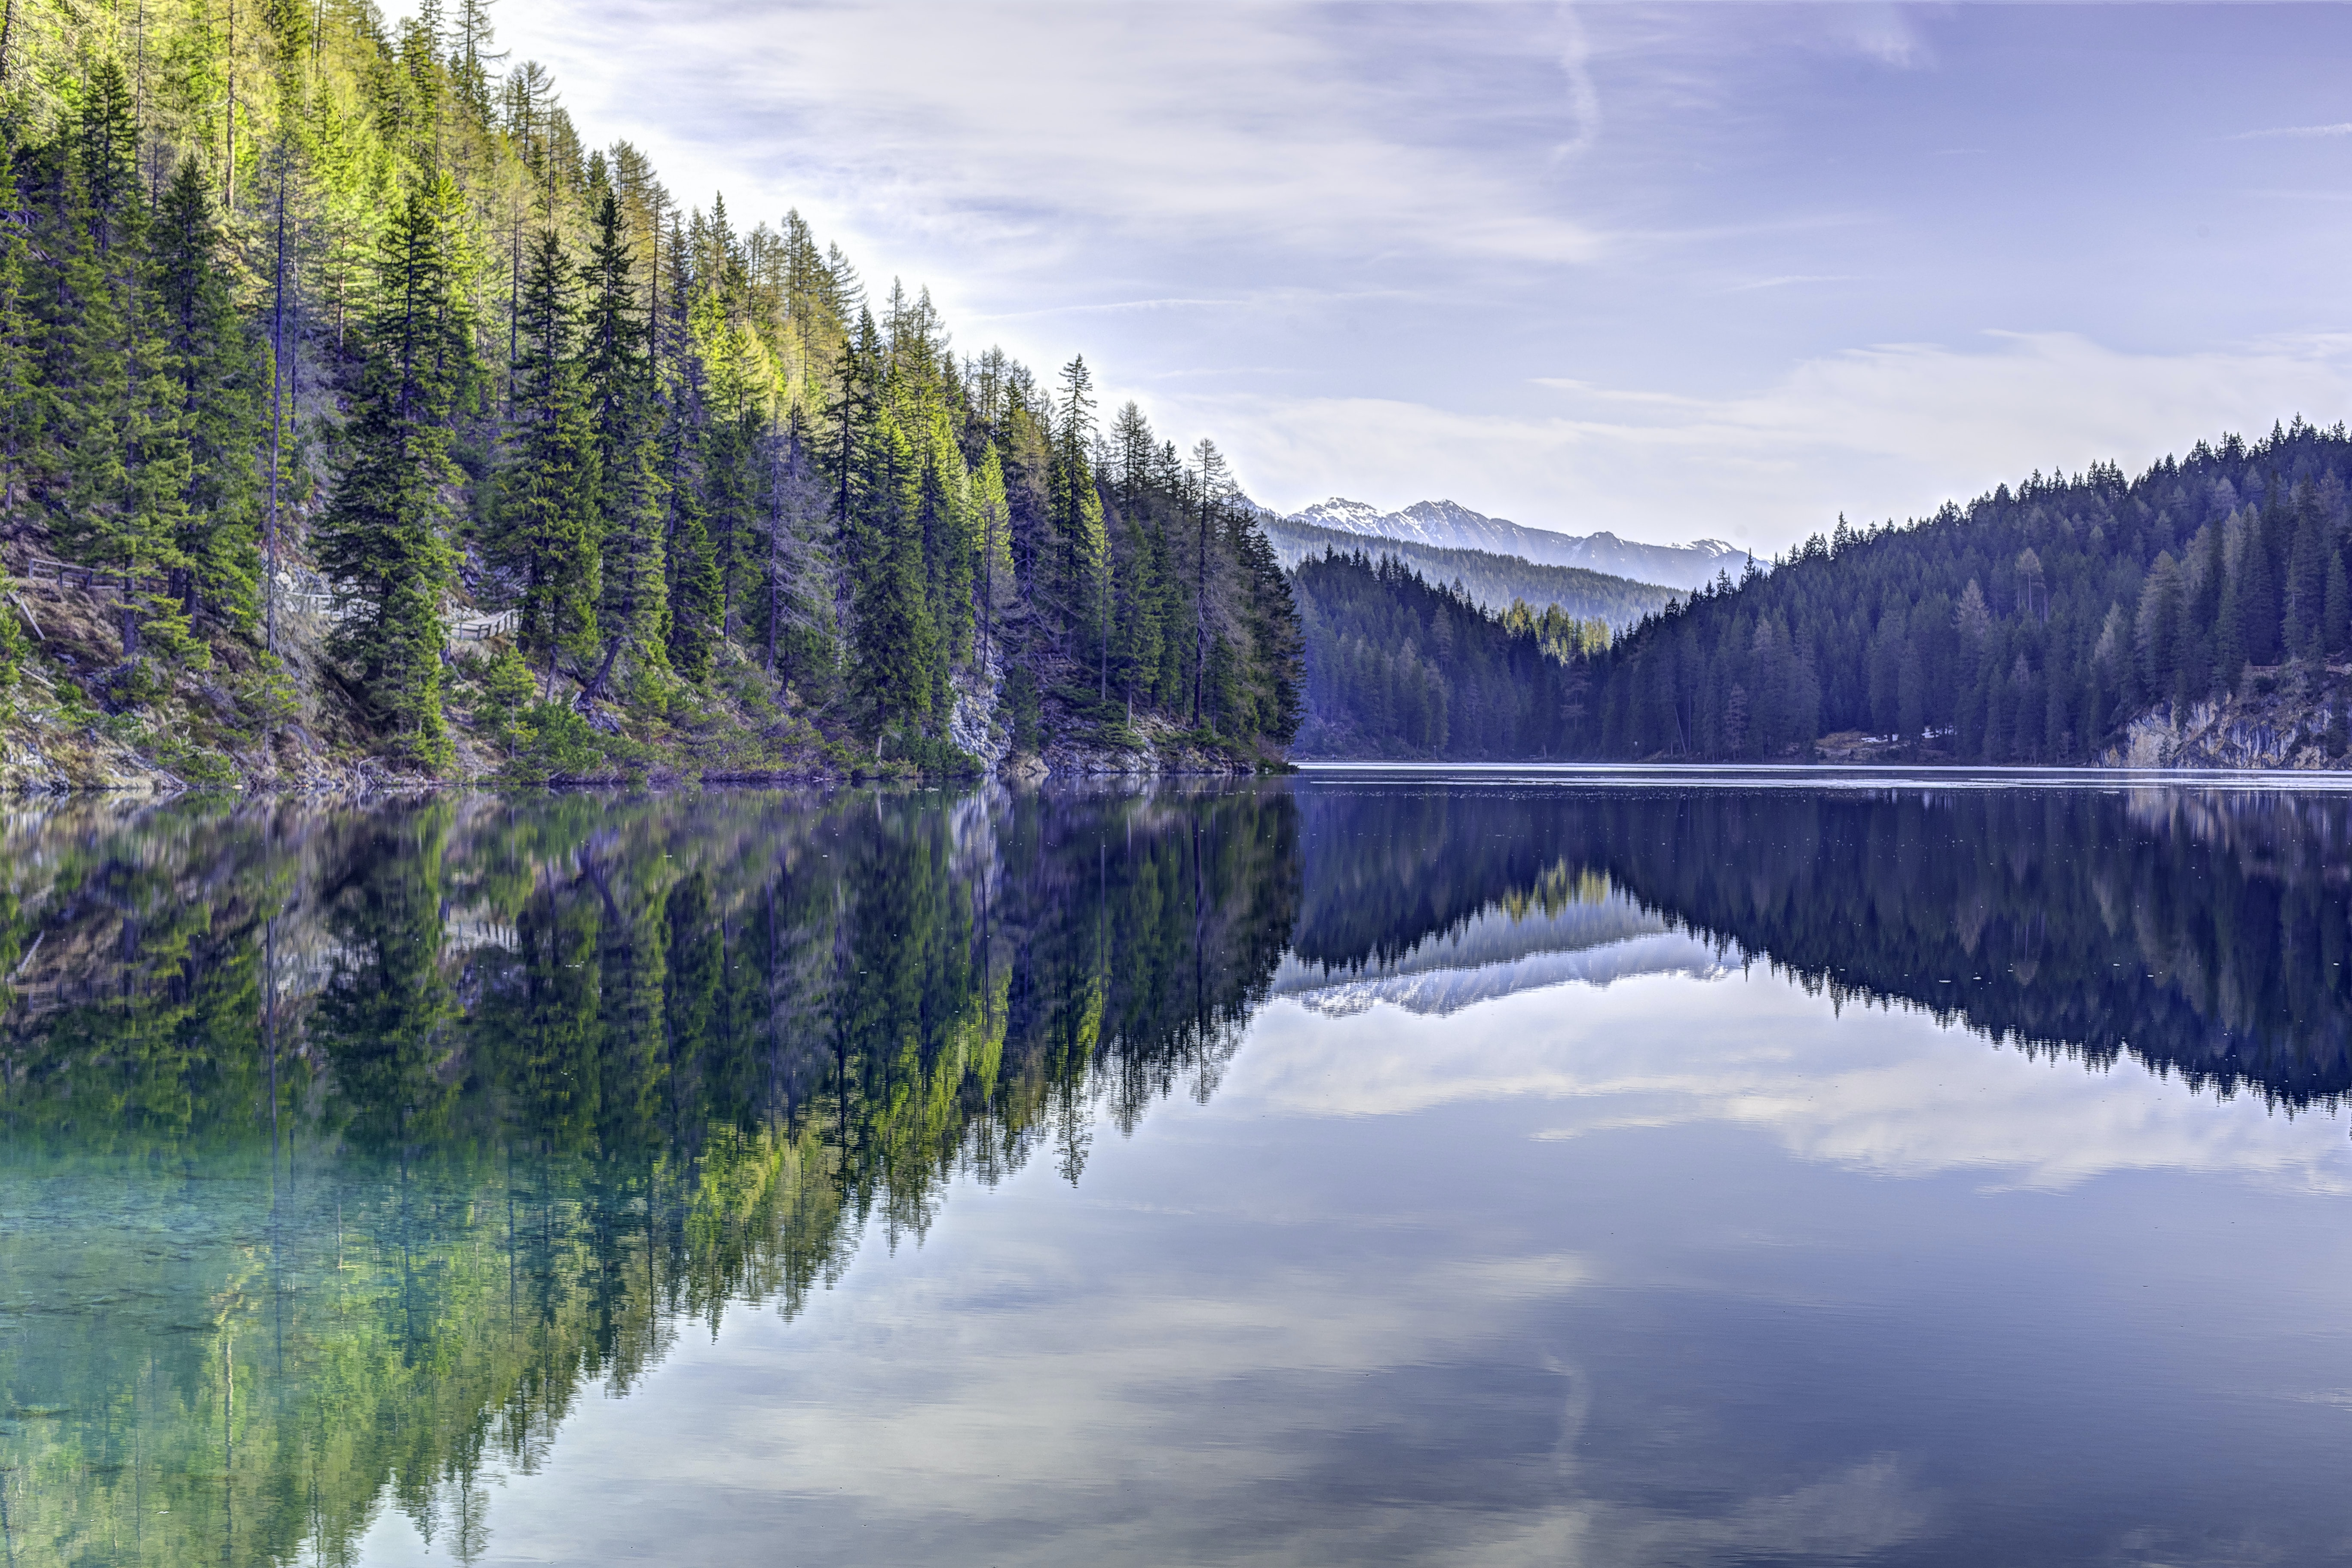 reflection of trees on body of water during daytime